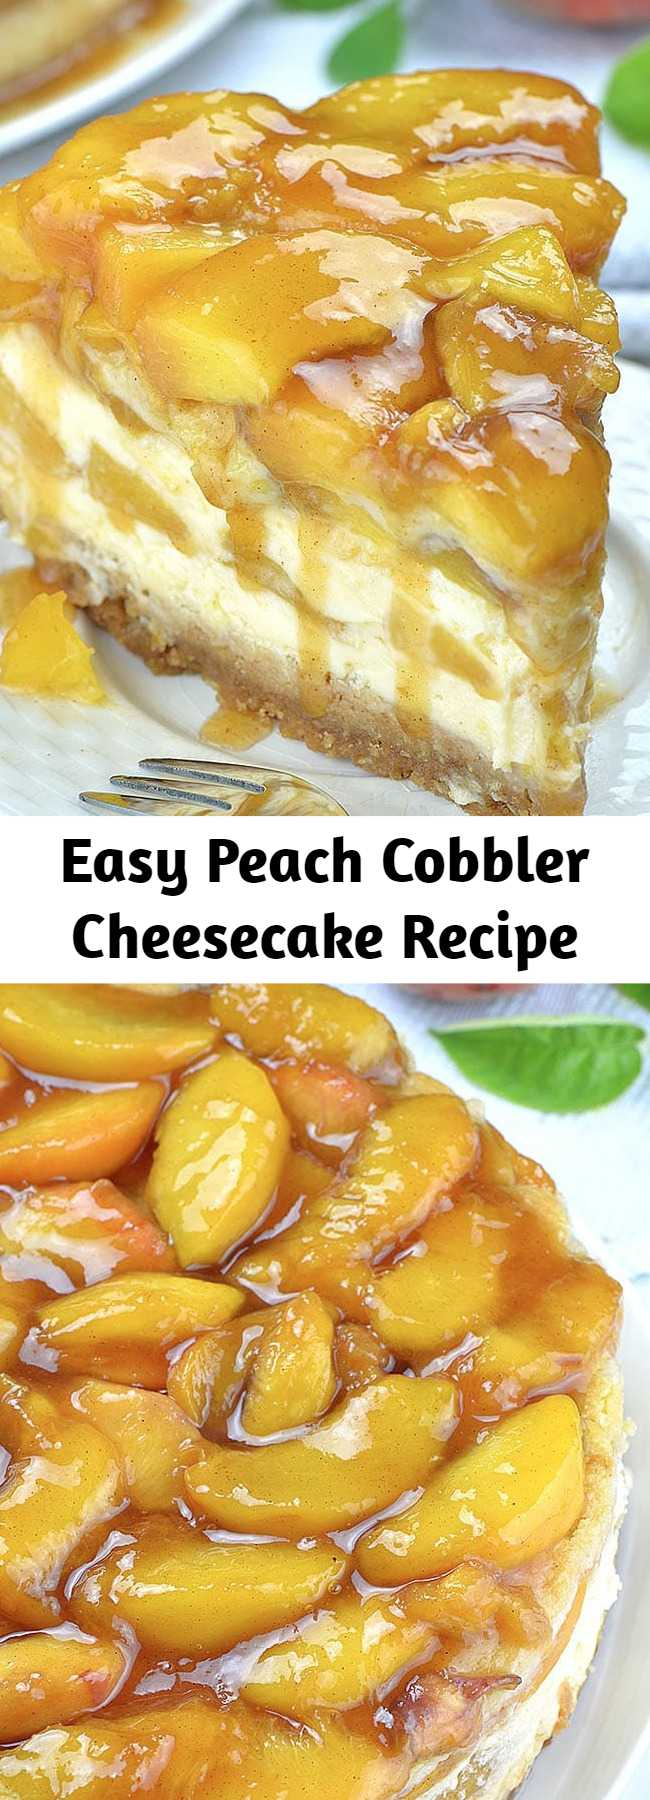 Easy Peach Cobbler Cheesecake Recipe - Peach Cobbler Cheesecake is the most amazing combo of creamy New York Style Cheesecake and classic southern Peach Cobbler, packed into one decadent dessert. It sounds melt-in-your-mouth-good, right? This cheesecake topped with peaches has everything you love about summery peach cobbler and cheesecake, and it's all in one easy dessert recipe!  #cheesecake #peachcobbler #peachcobbler